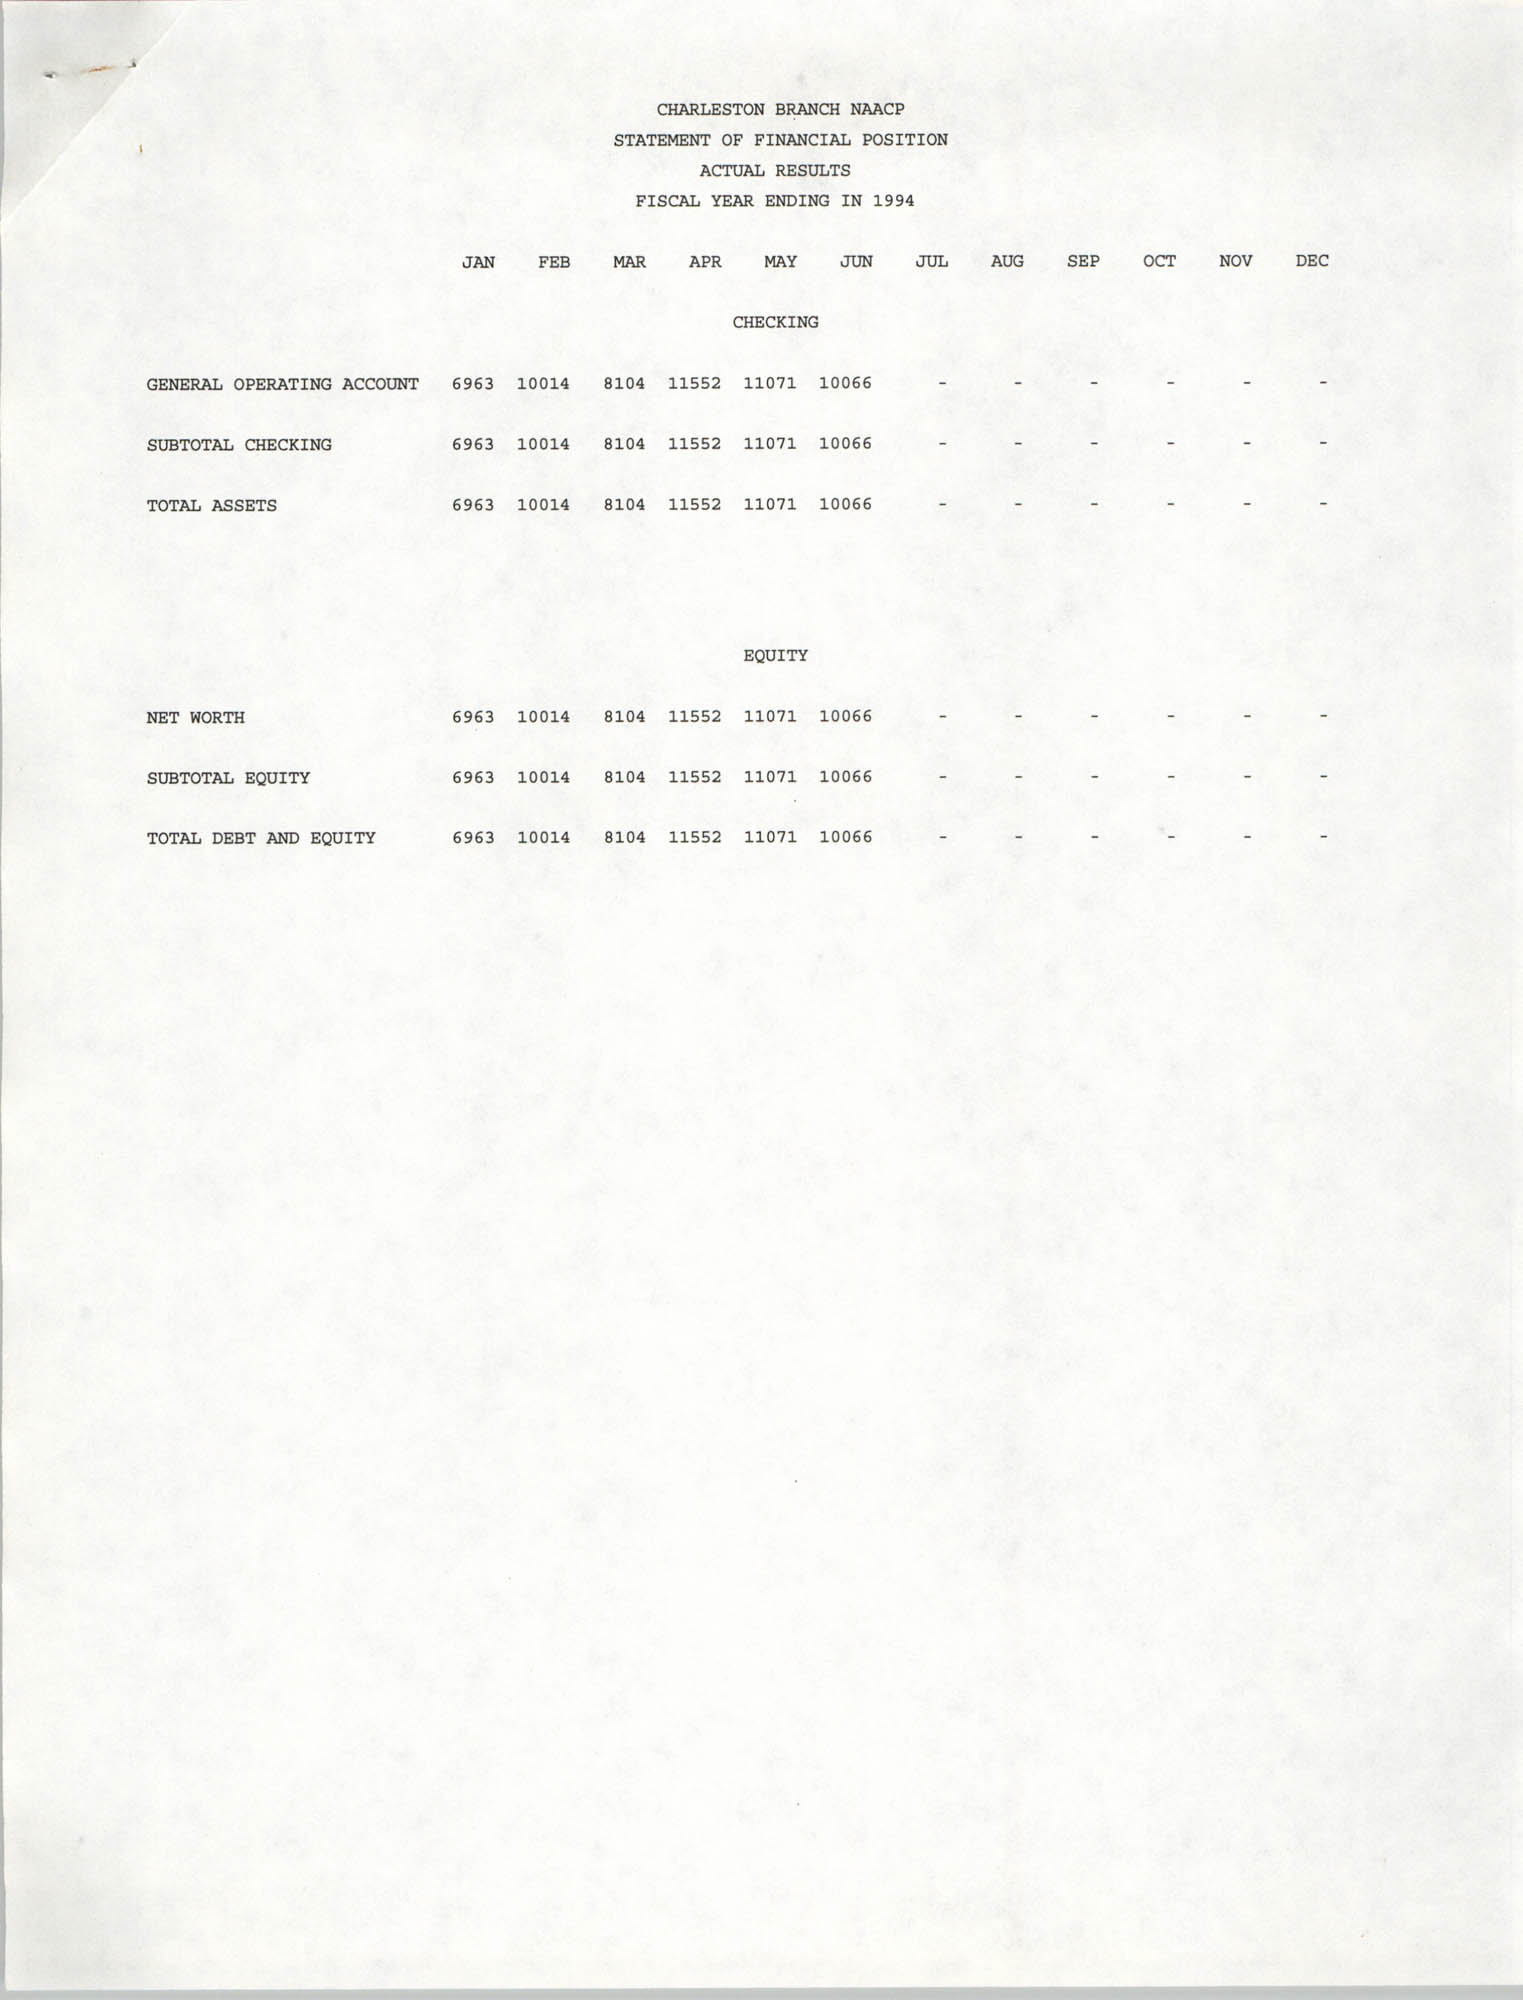 Charleston Branch of the NAACP Statement of Financial Position, 1994